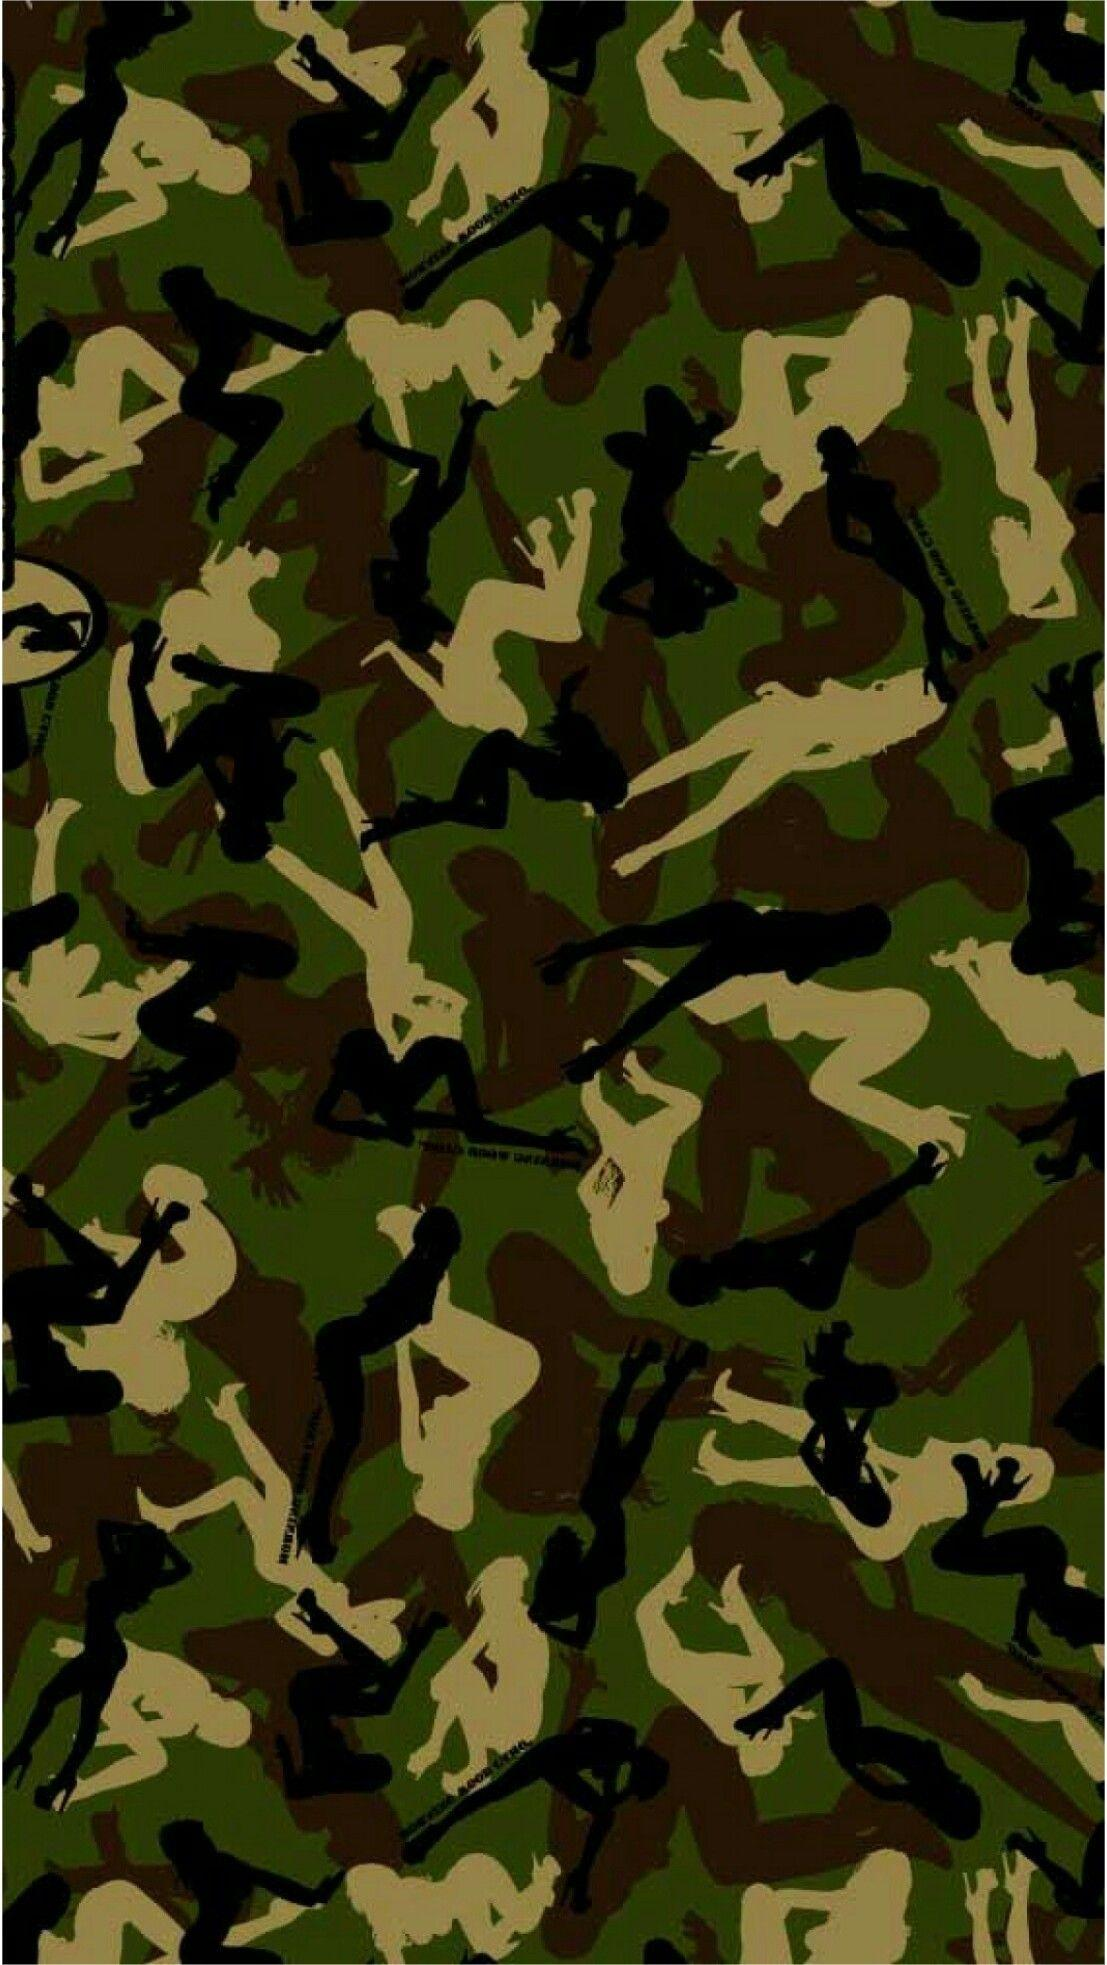 Digital Camouflage Wallpapers Wallpaper Cave